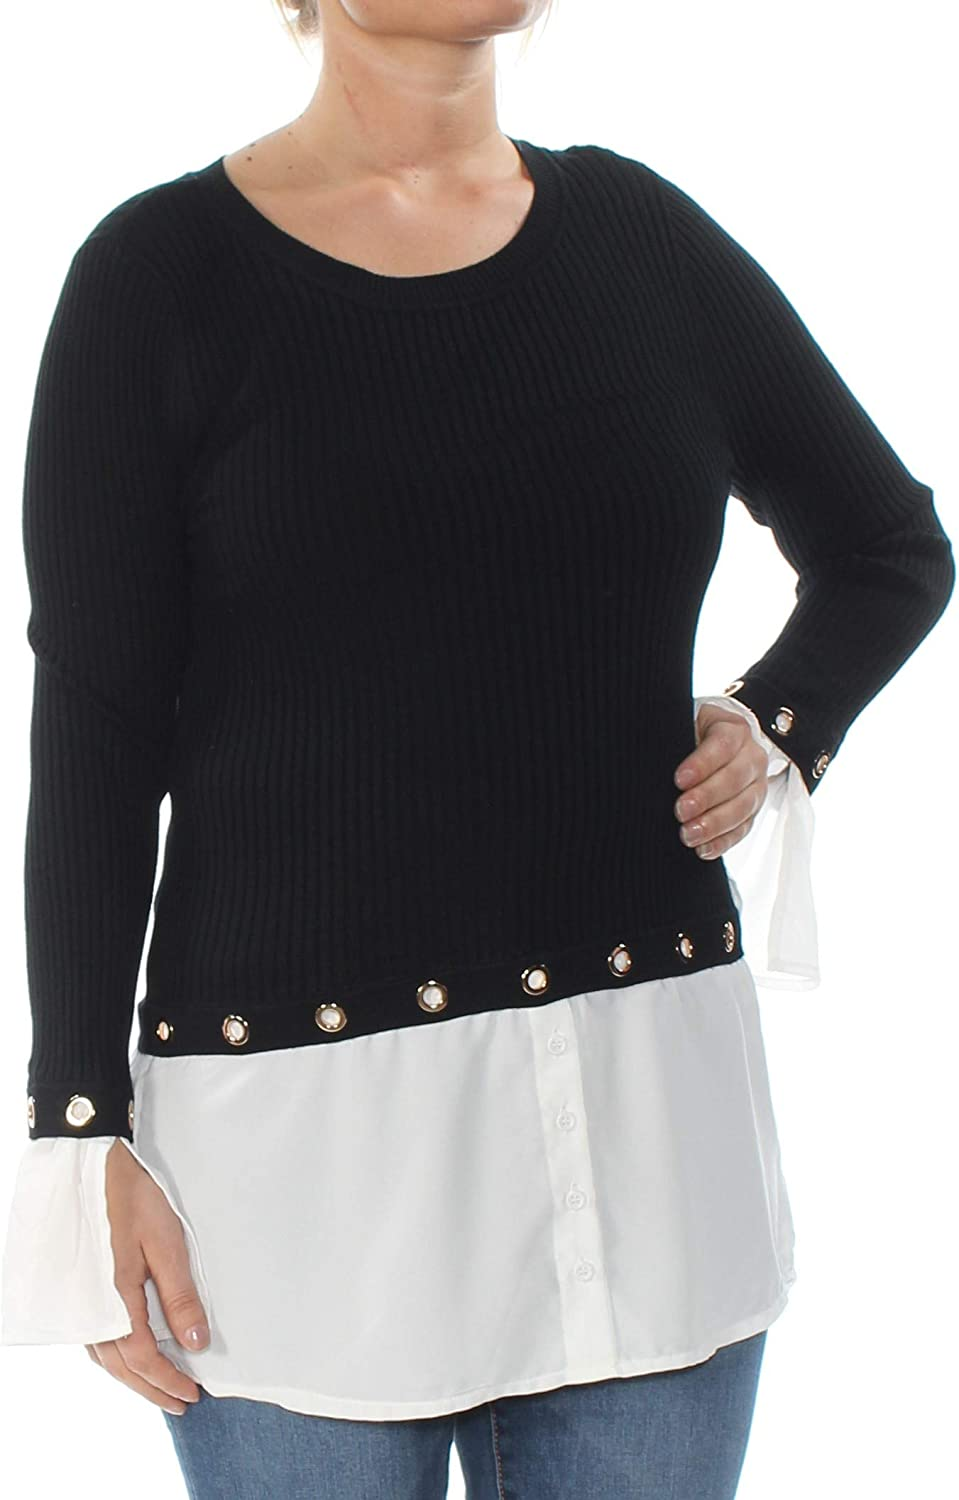 INC International Concepts Women's GrommetEmbellished Layered Look Sweater